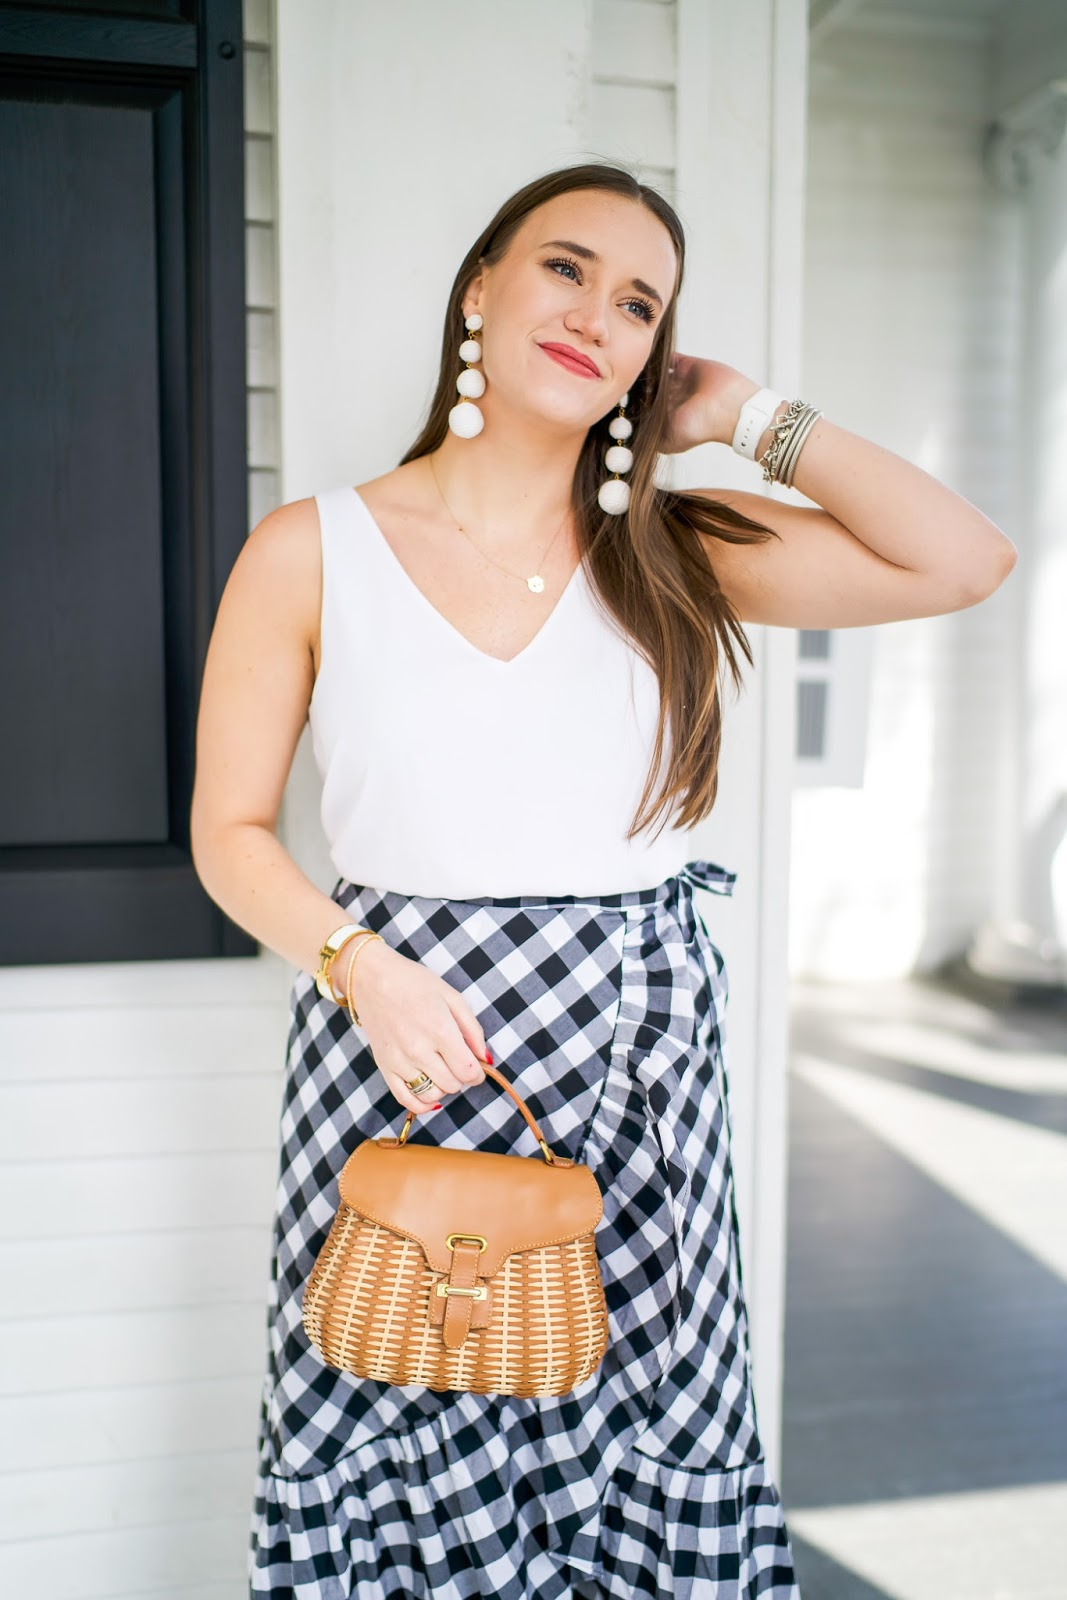 Bridal Shower Outfit styled by popular New York fashion blogger Covering the Bases